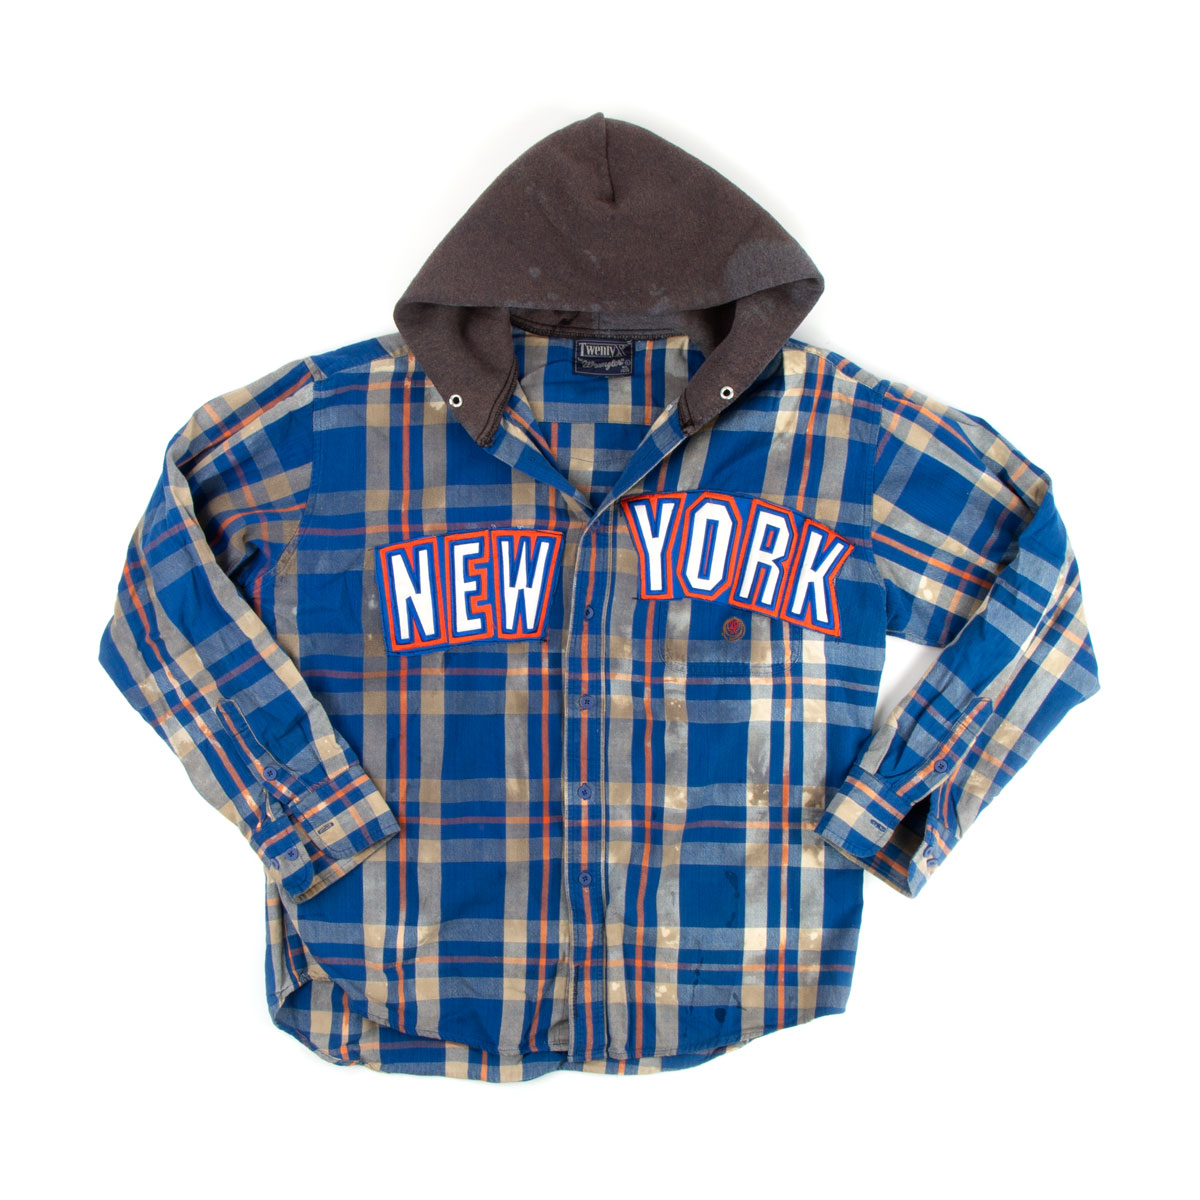 Blue Plaid New York Button-up with Hood (L)